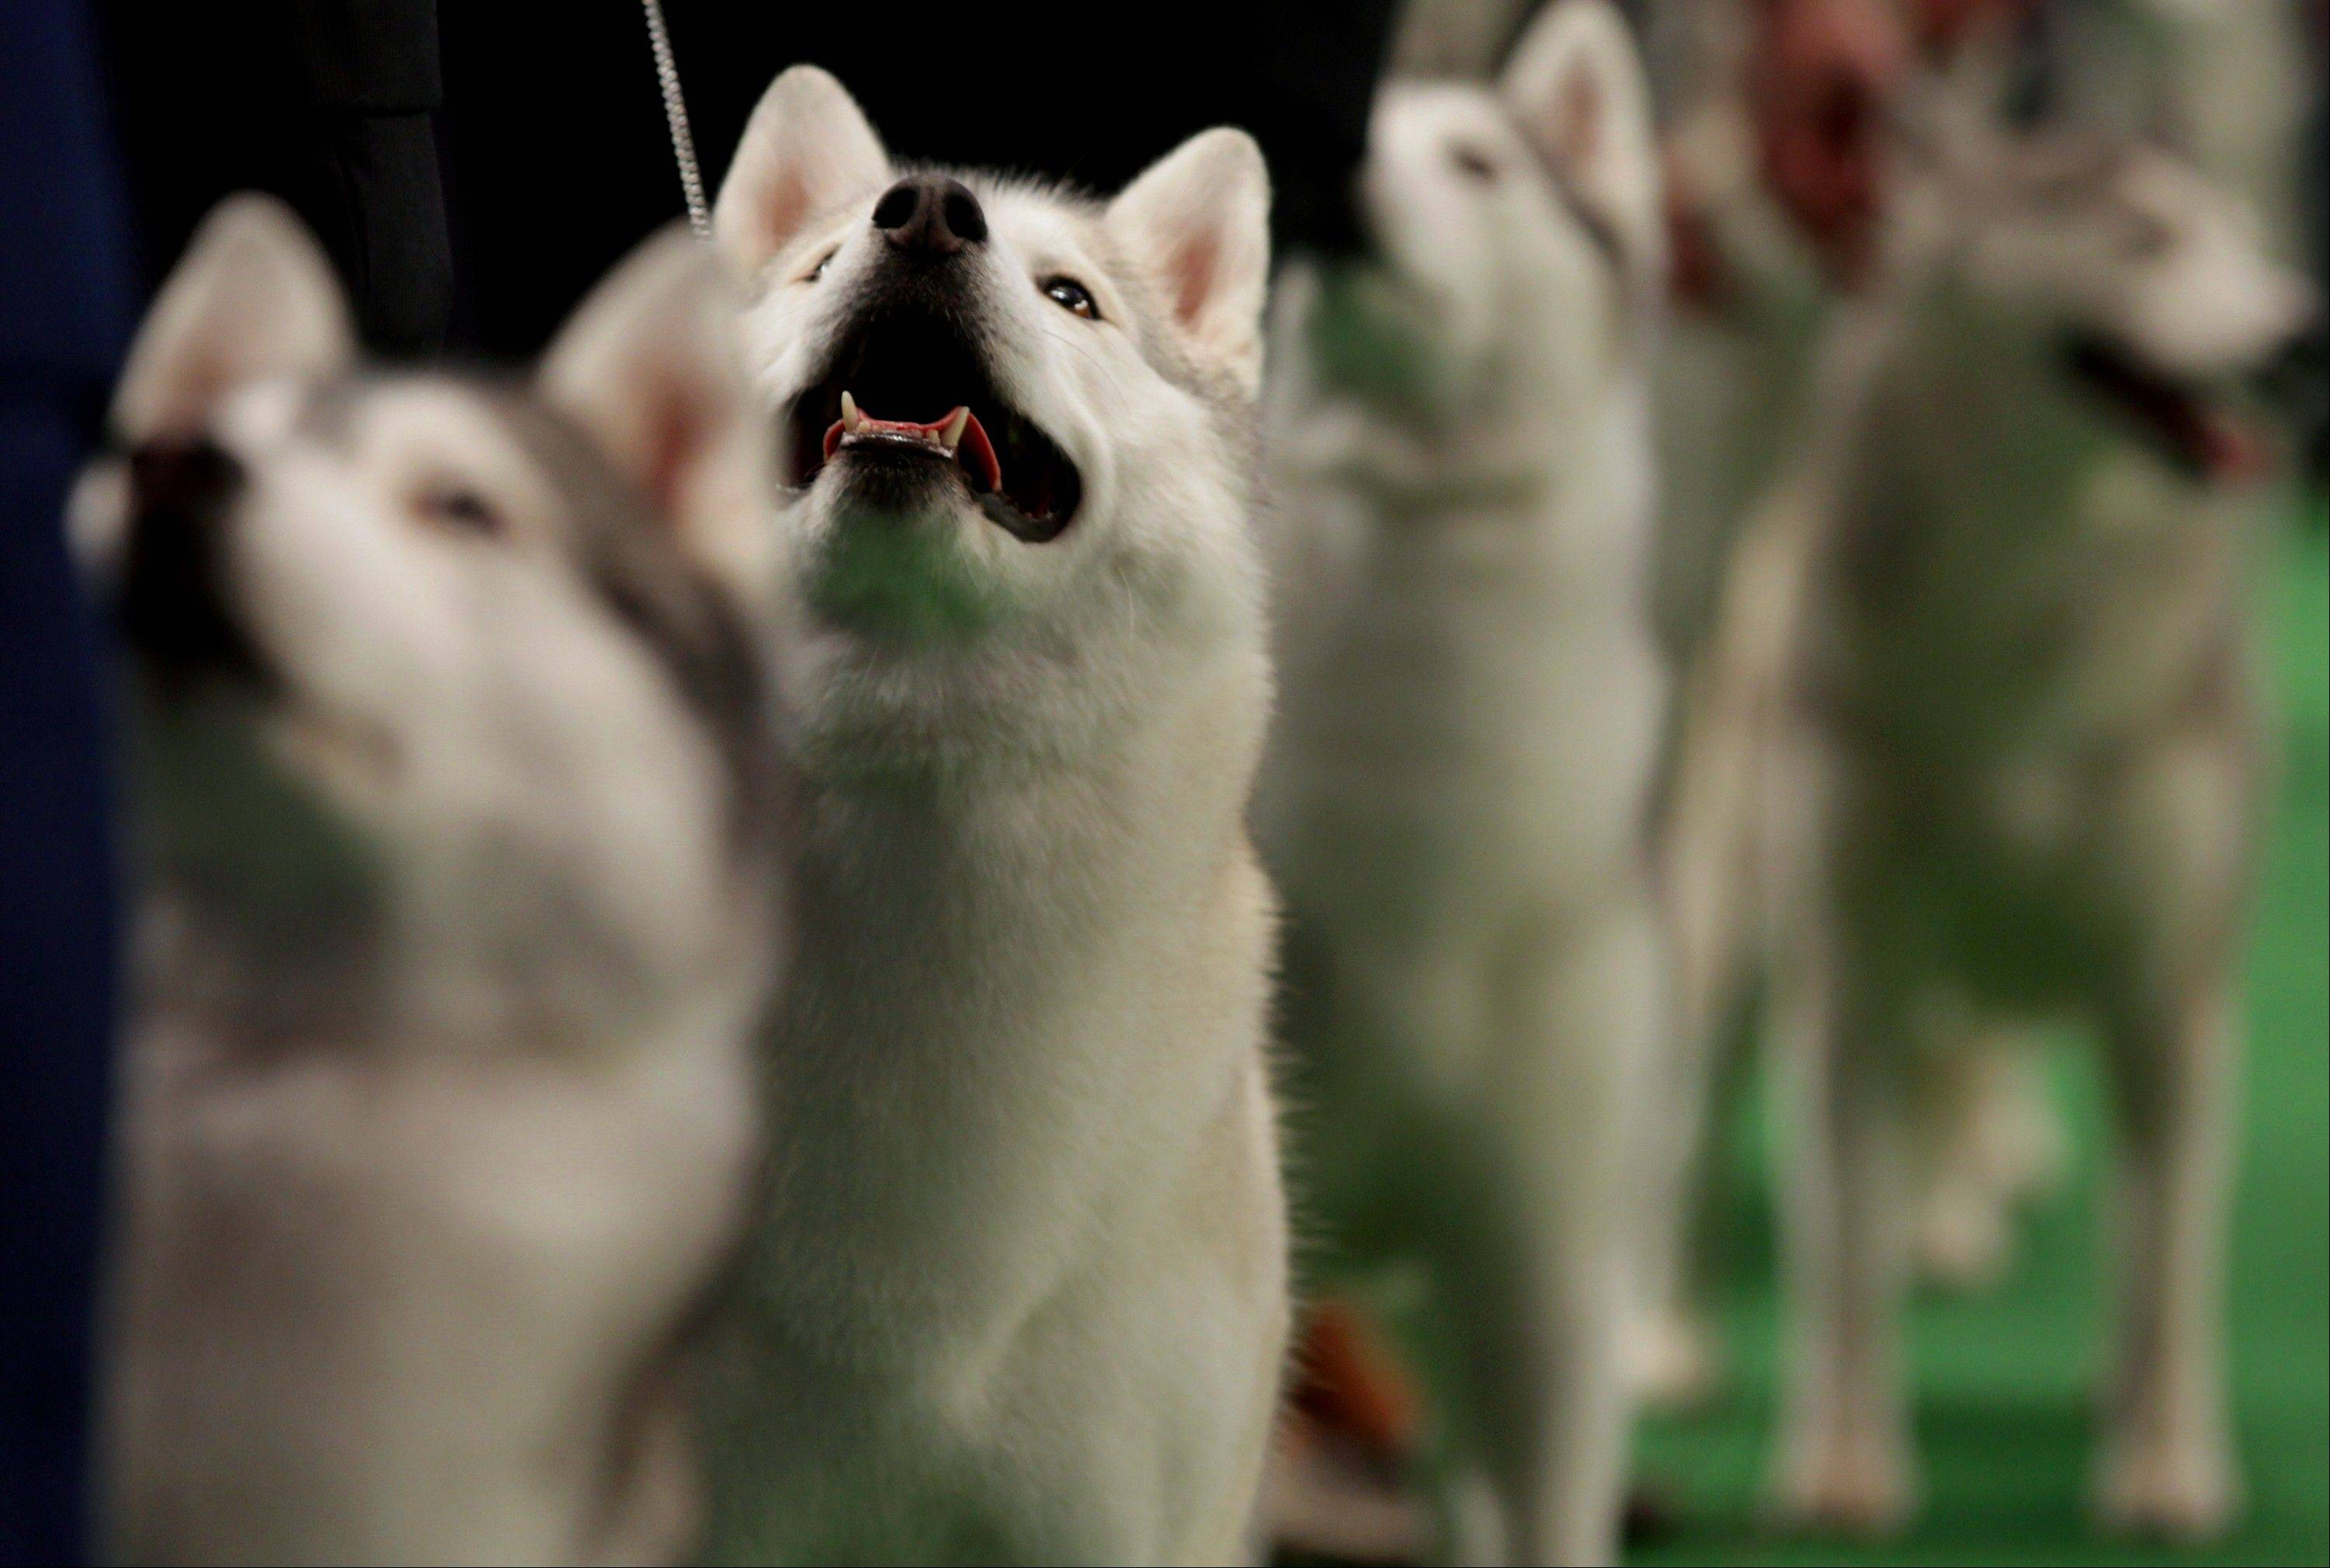 Winnie, a Siberian husky, second from left, competes at the 136th annual Westminster Kennel Club dog show. Winnie received an award of merit in the competition.